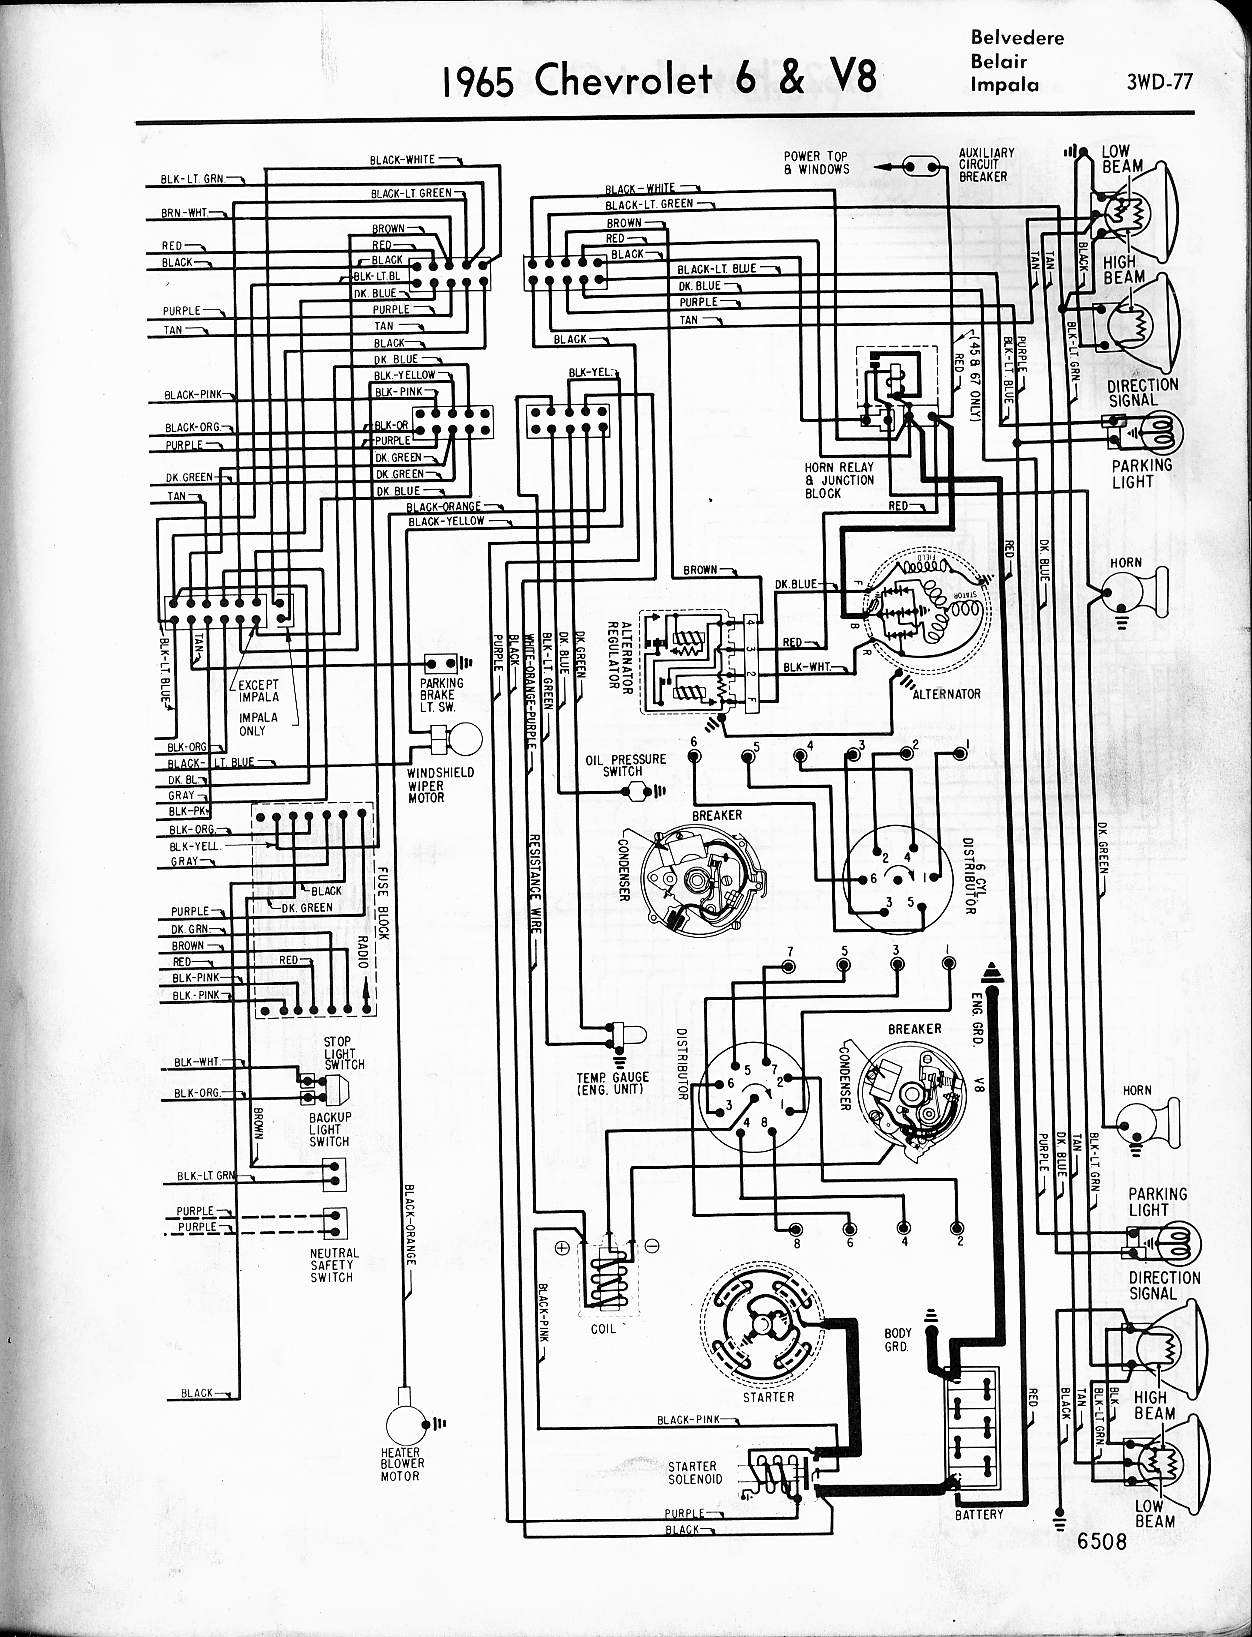 1965 chevy chevelle wiring diagram zxlmvgs 1964 impala wiring harness 1996 jeep cherokee wiring \u2022 wiring 63 chevy c10 wiring harness at fashall.co